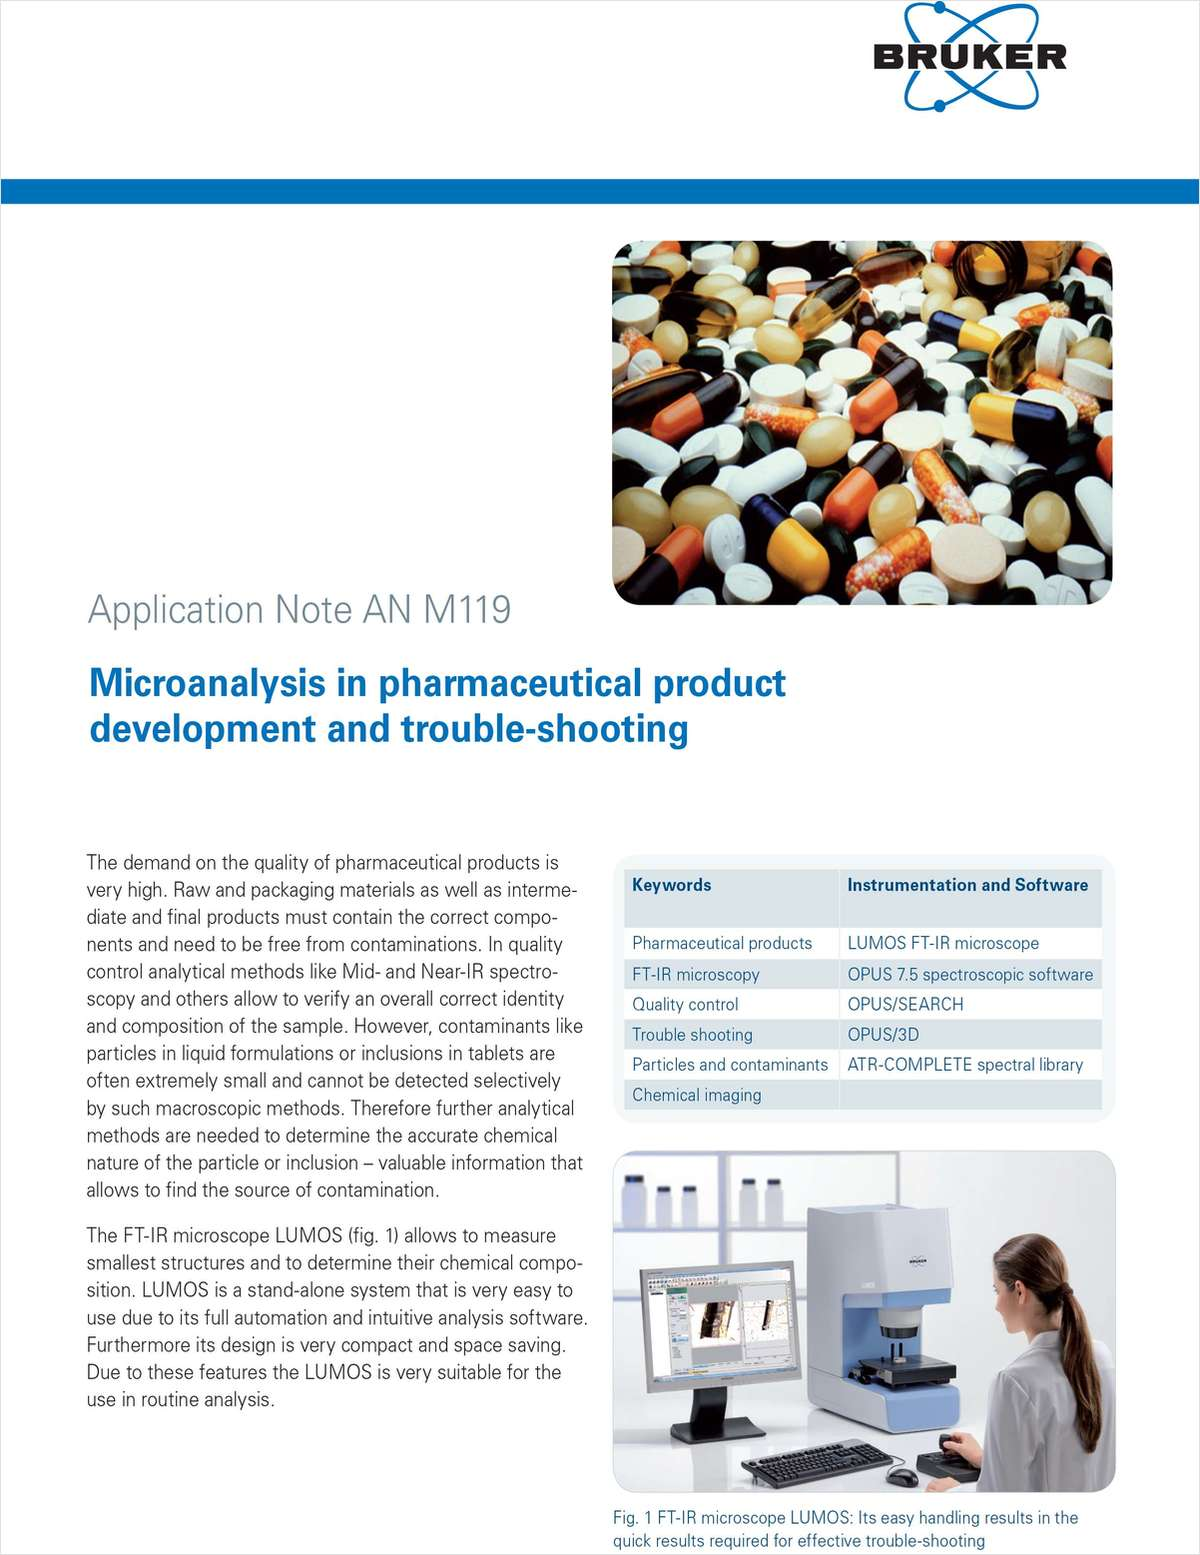 Microanalysis in Pharmaceutical Product Development and Trouble Shooting using FTIR Microscopy